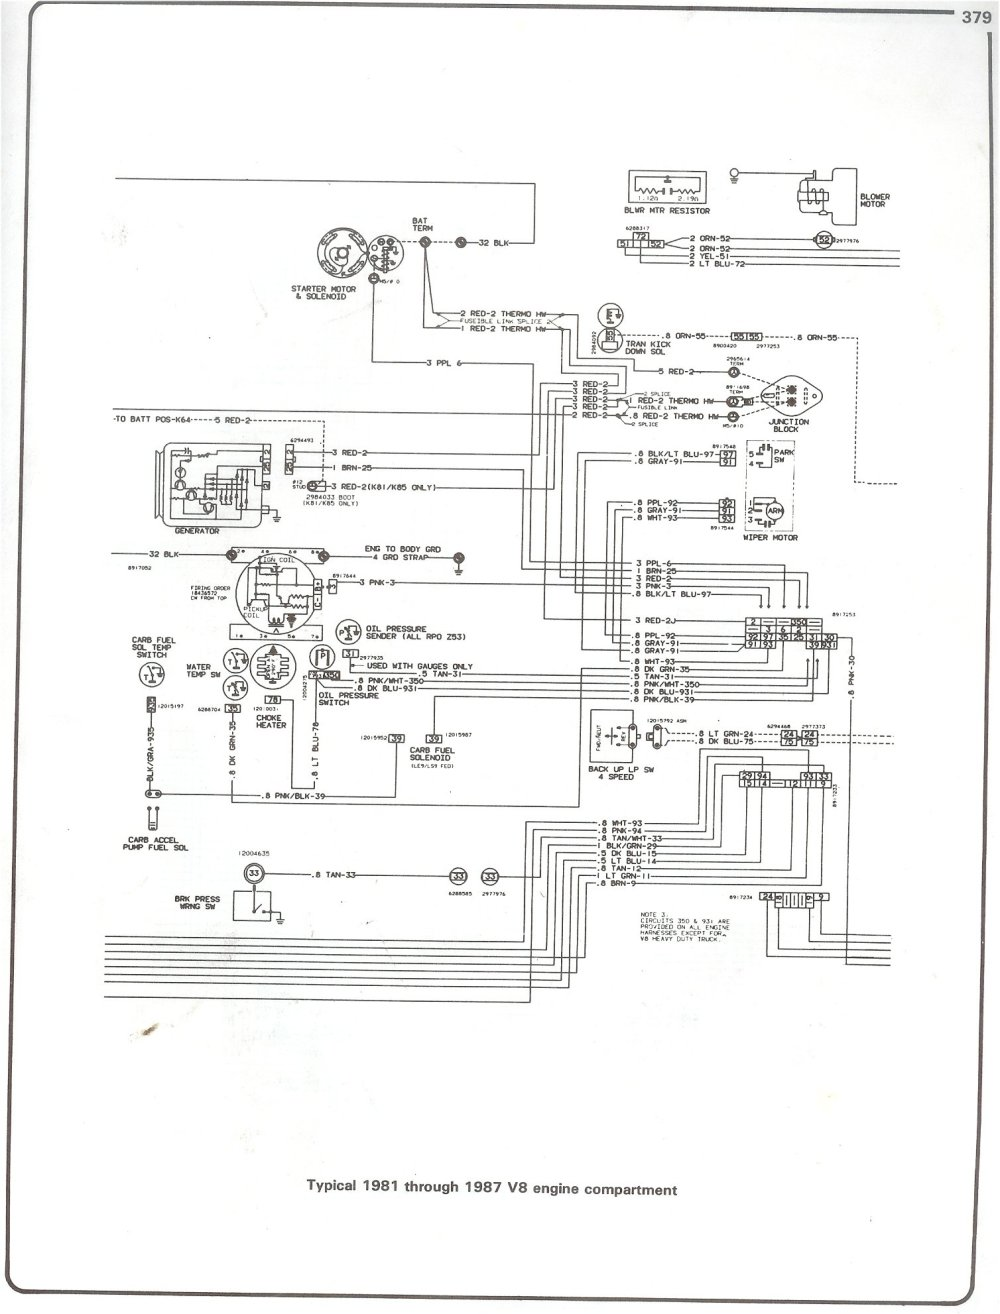 medium resolution of 73 chevy c30 wiring diagram wiring diagram third level 73 chevy monte carlo 1979 chevy wiring